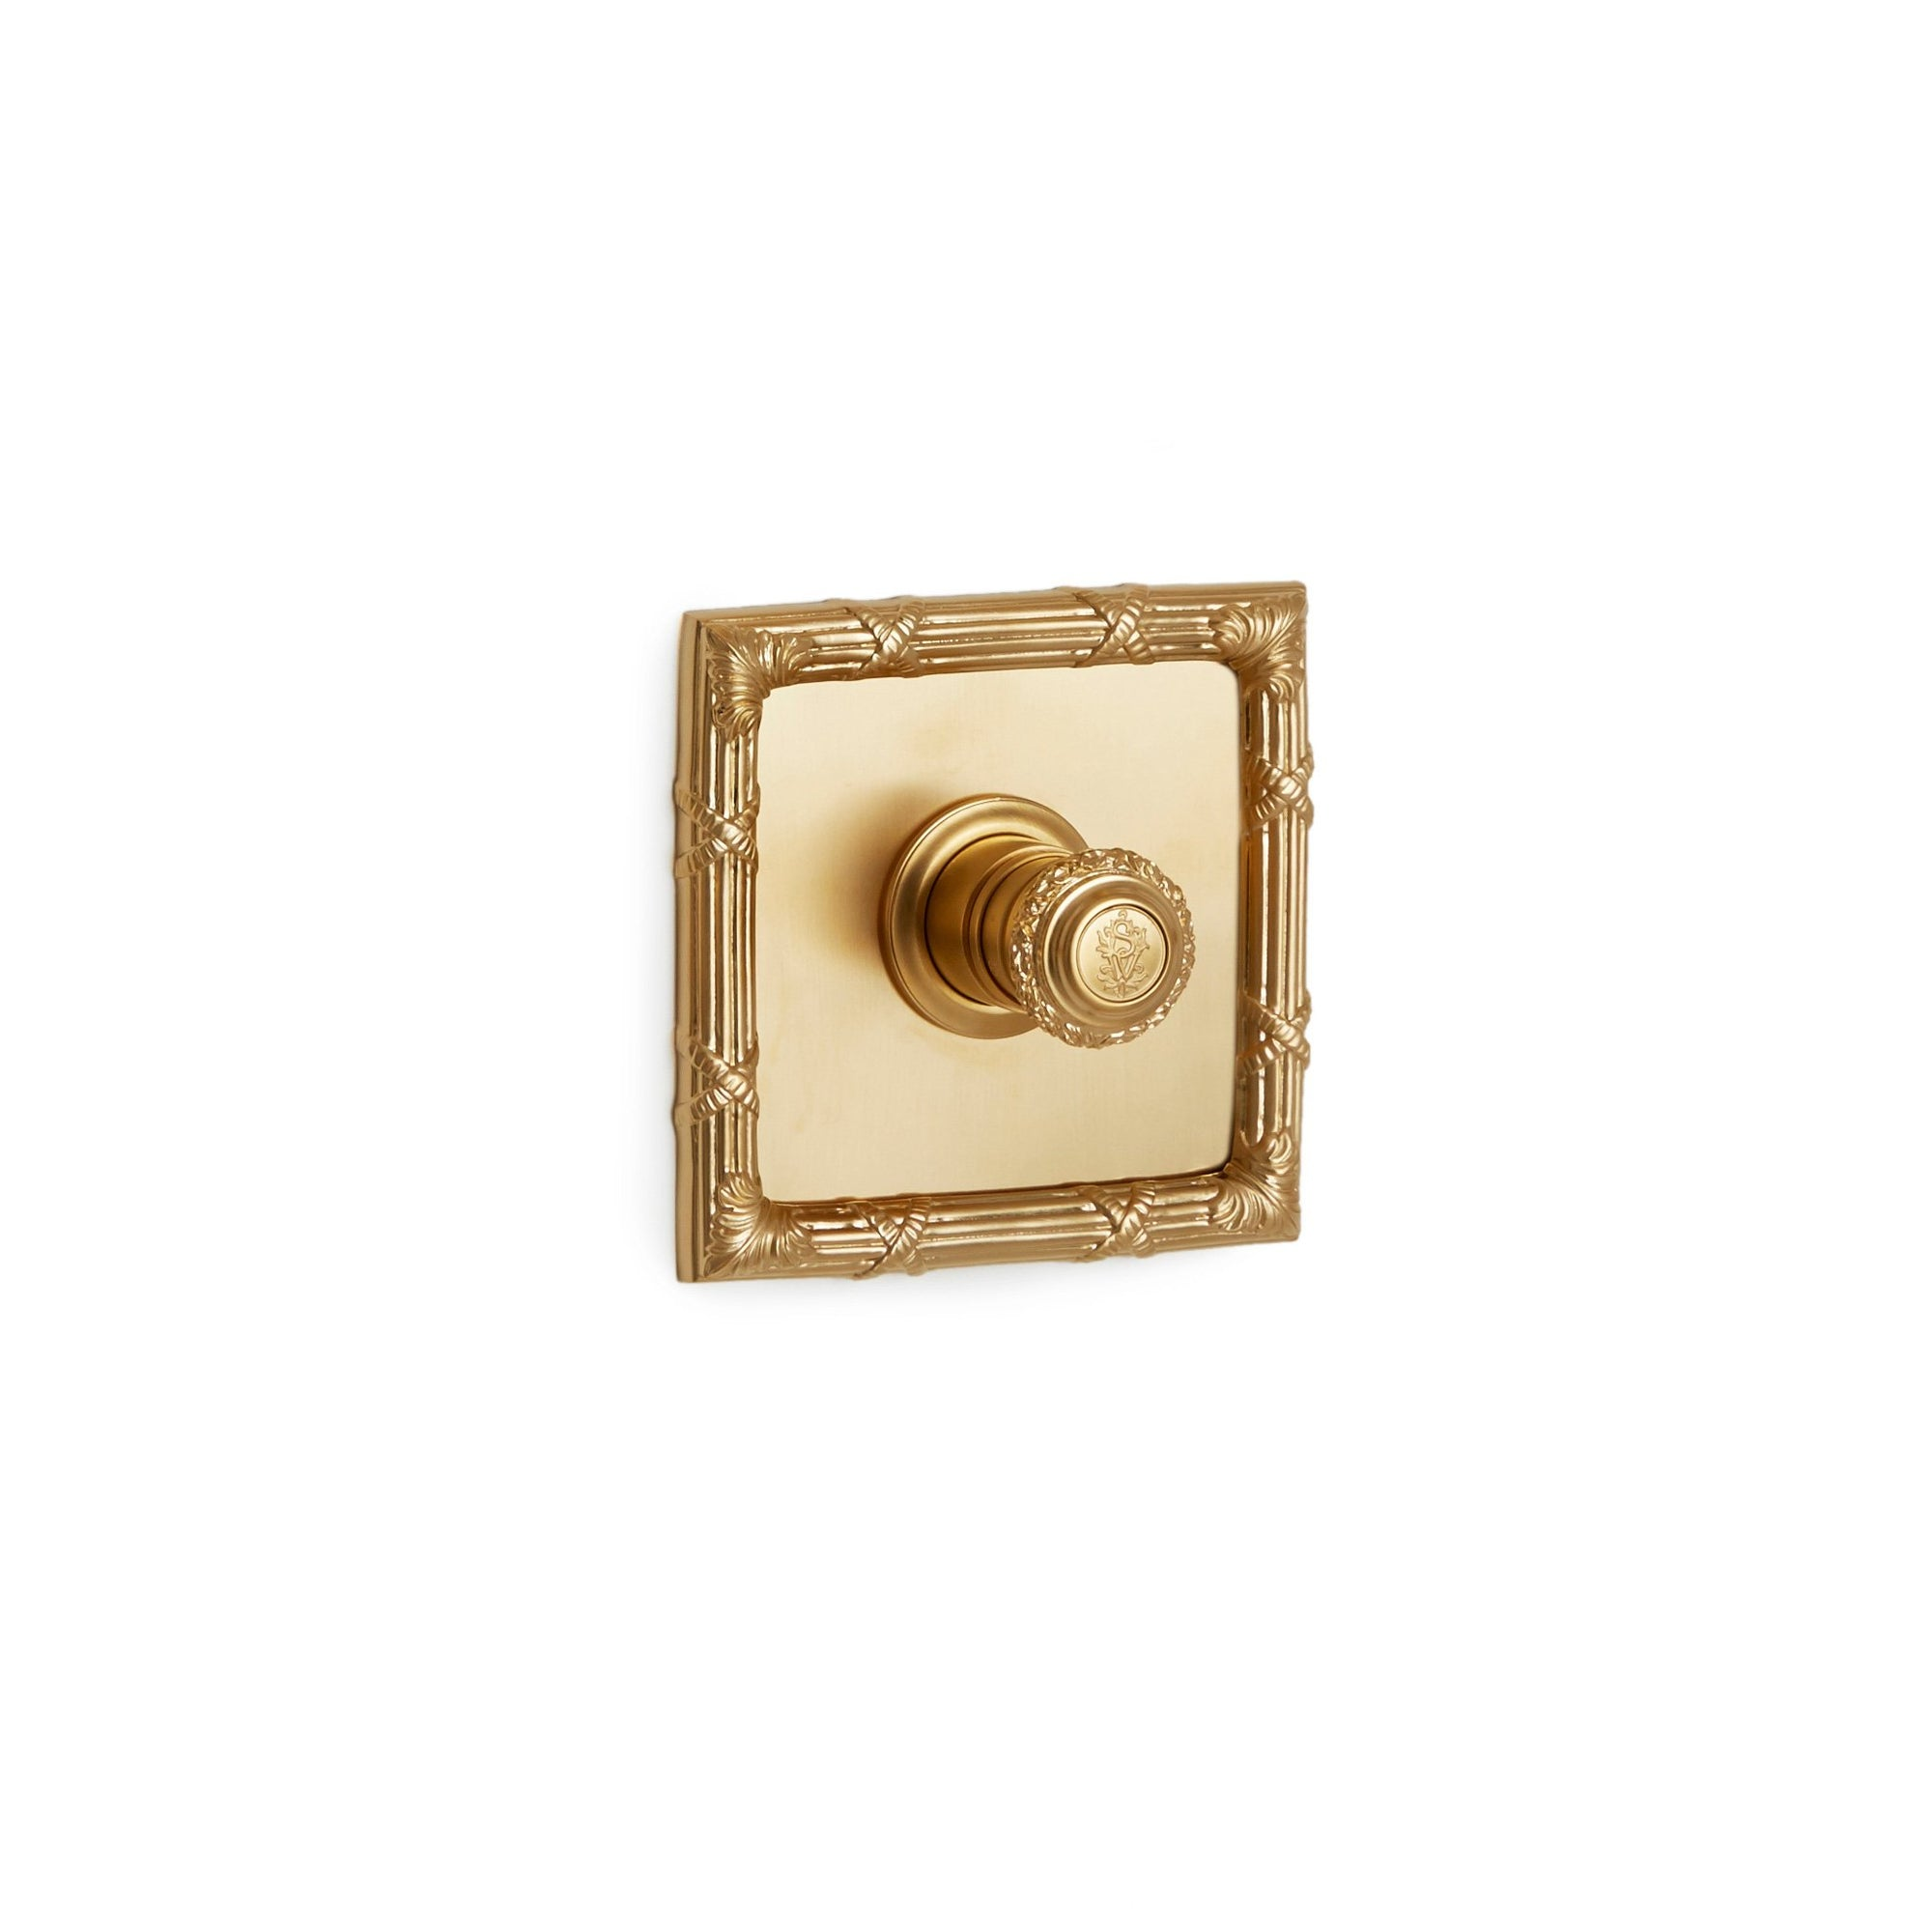 TMO03AC-LOGO-GP Sherle Wagner International Ribbon & Reed High Flow Thermostatic Trim in Gold Plate metal finish